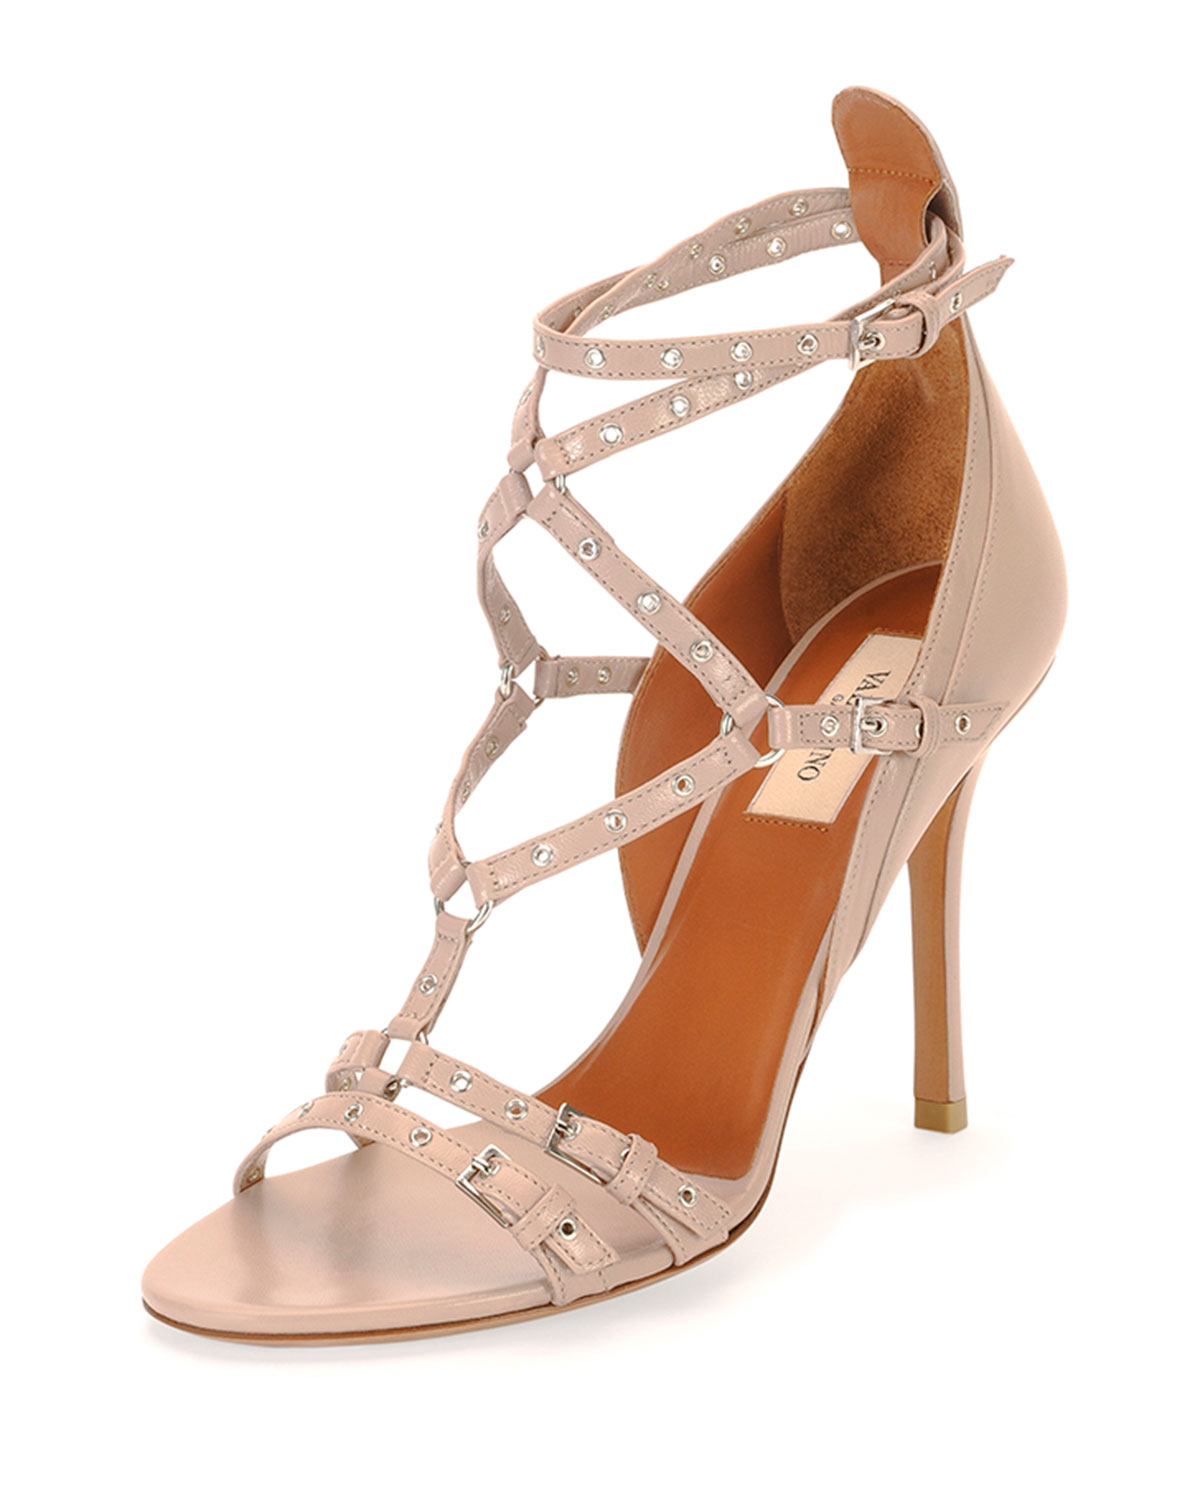 Valentino Love Latch Strappy Grommet Leather Sandal, Poudre, Size: 37.0B/7.0B